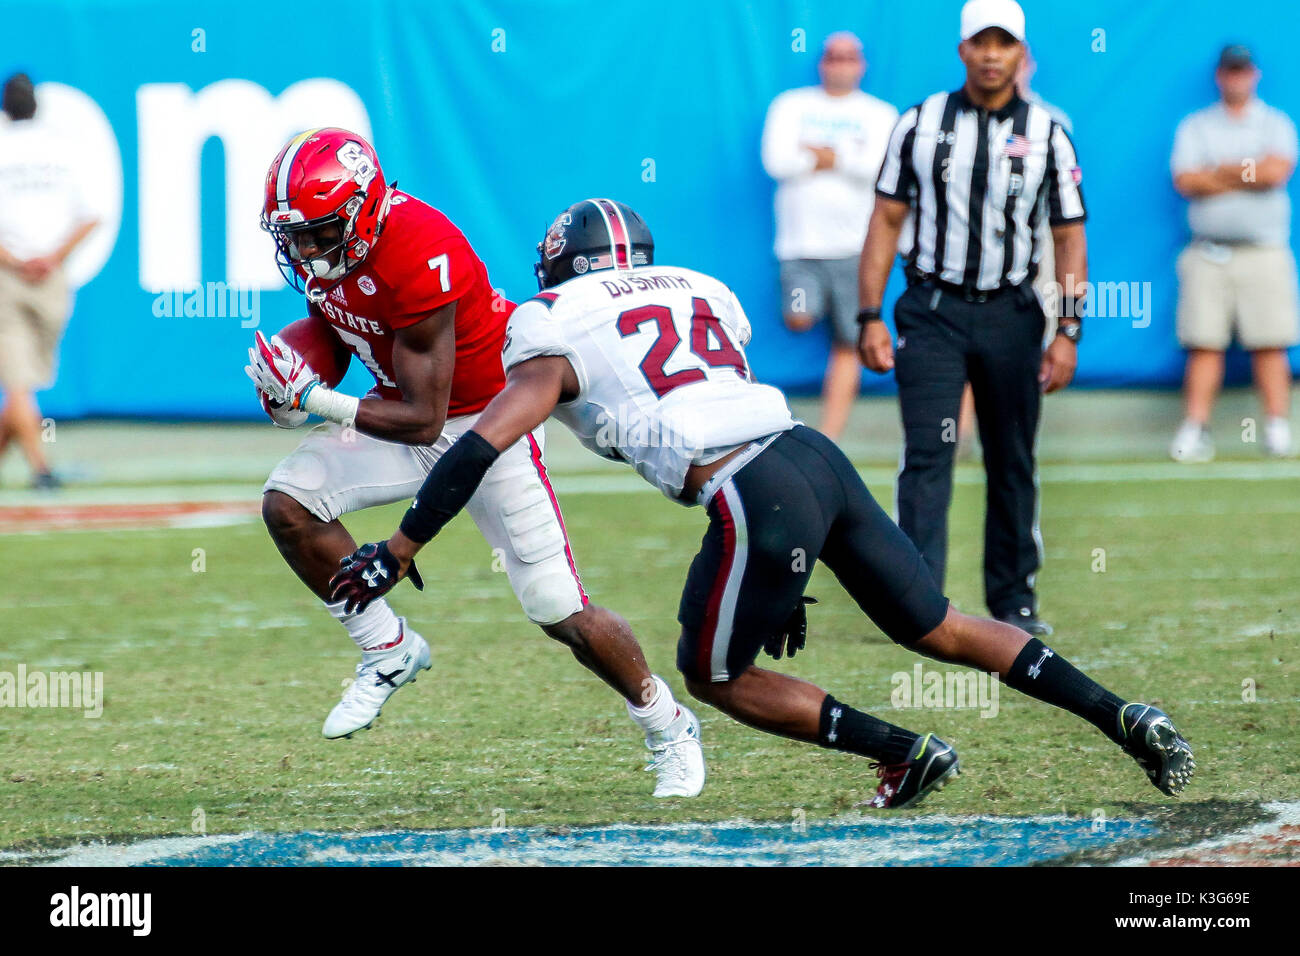 Charlotte, NC, USA. 2nd Sep, 2017. Nyheim Hines (7) of the NC State Wolfpack runs into D.J. Smith (24) of the South Carolina Gamecocks in the NCAA football matchup between the NC State Wolfpack and the South Carolina Gamecocks at Bank of America Stadium in Charlotte, NC. (Scott Kinser/Cal Sport Media) Credit: csm/Alamy Live News - Stock Image